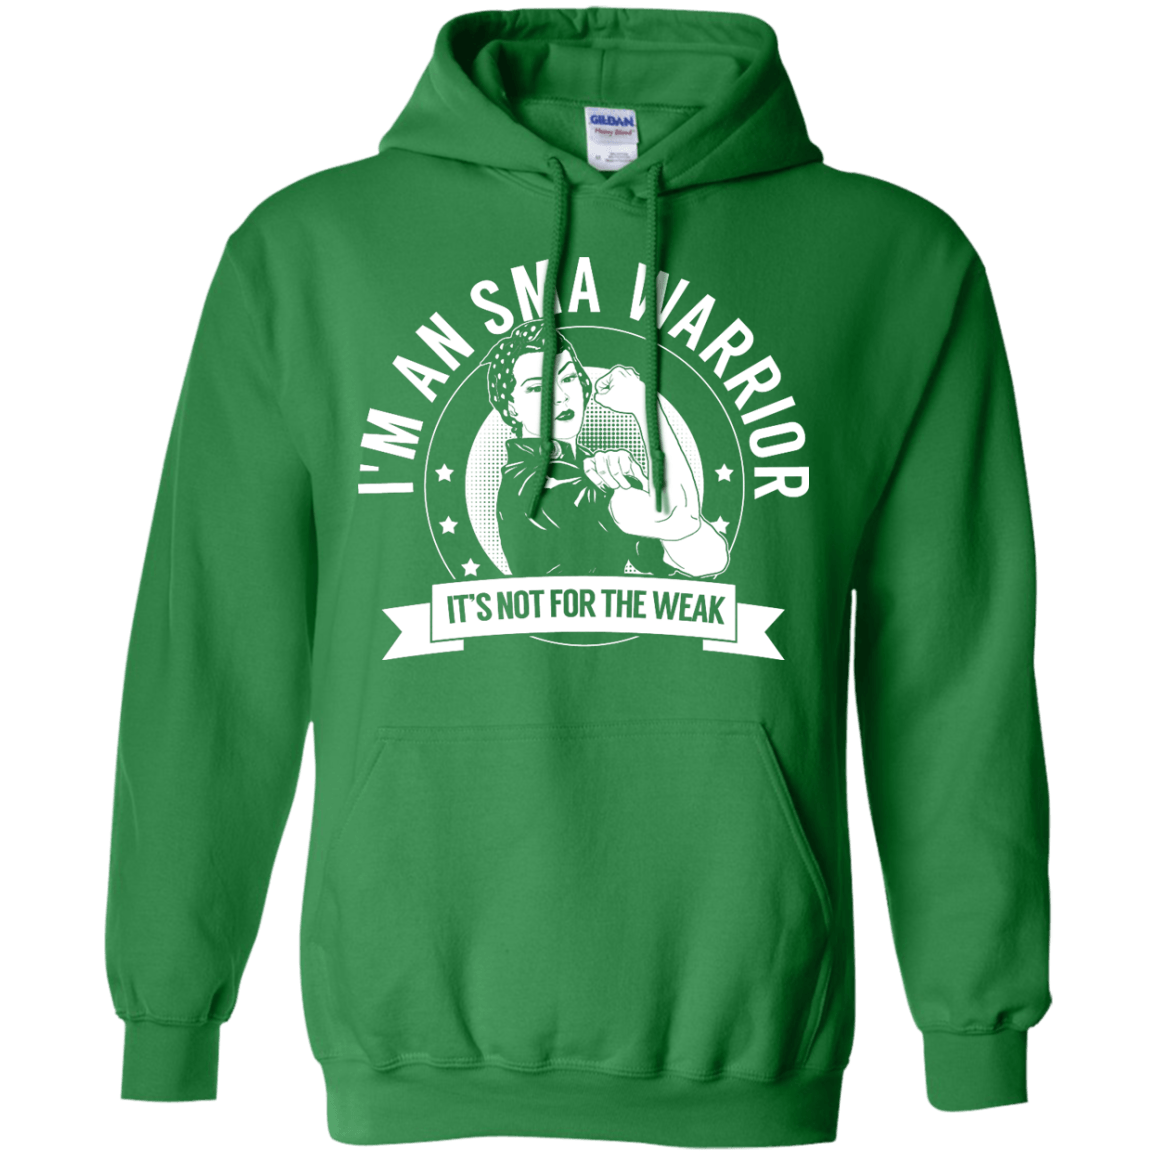 Sweatshirts - Spinal Muscular Atrophy - SMA Warrior Not For The Weak Pullover Hoodie 8 Oz